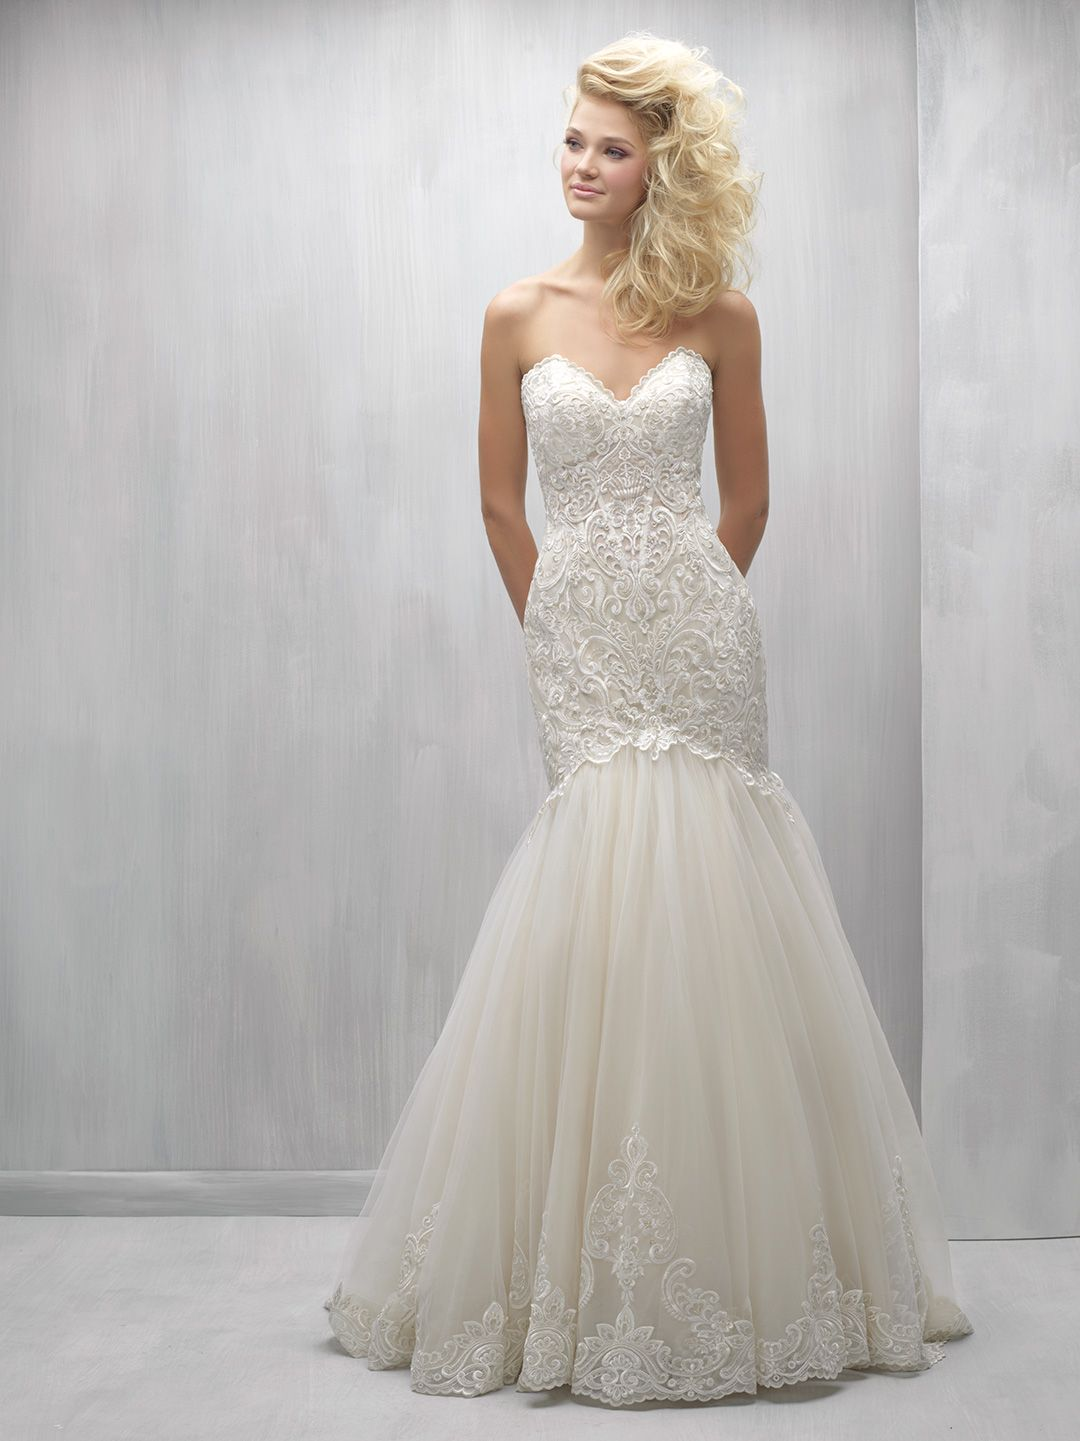 Pin by Classy Concepts Bridal Boutique on Modern Bridal | Pinterest ...